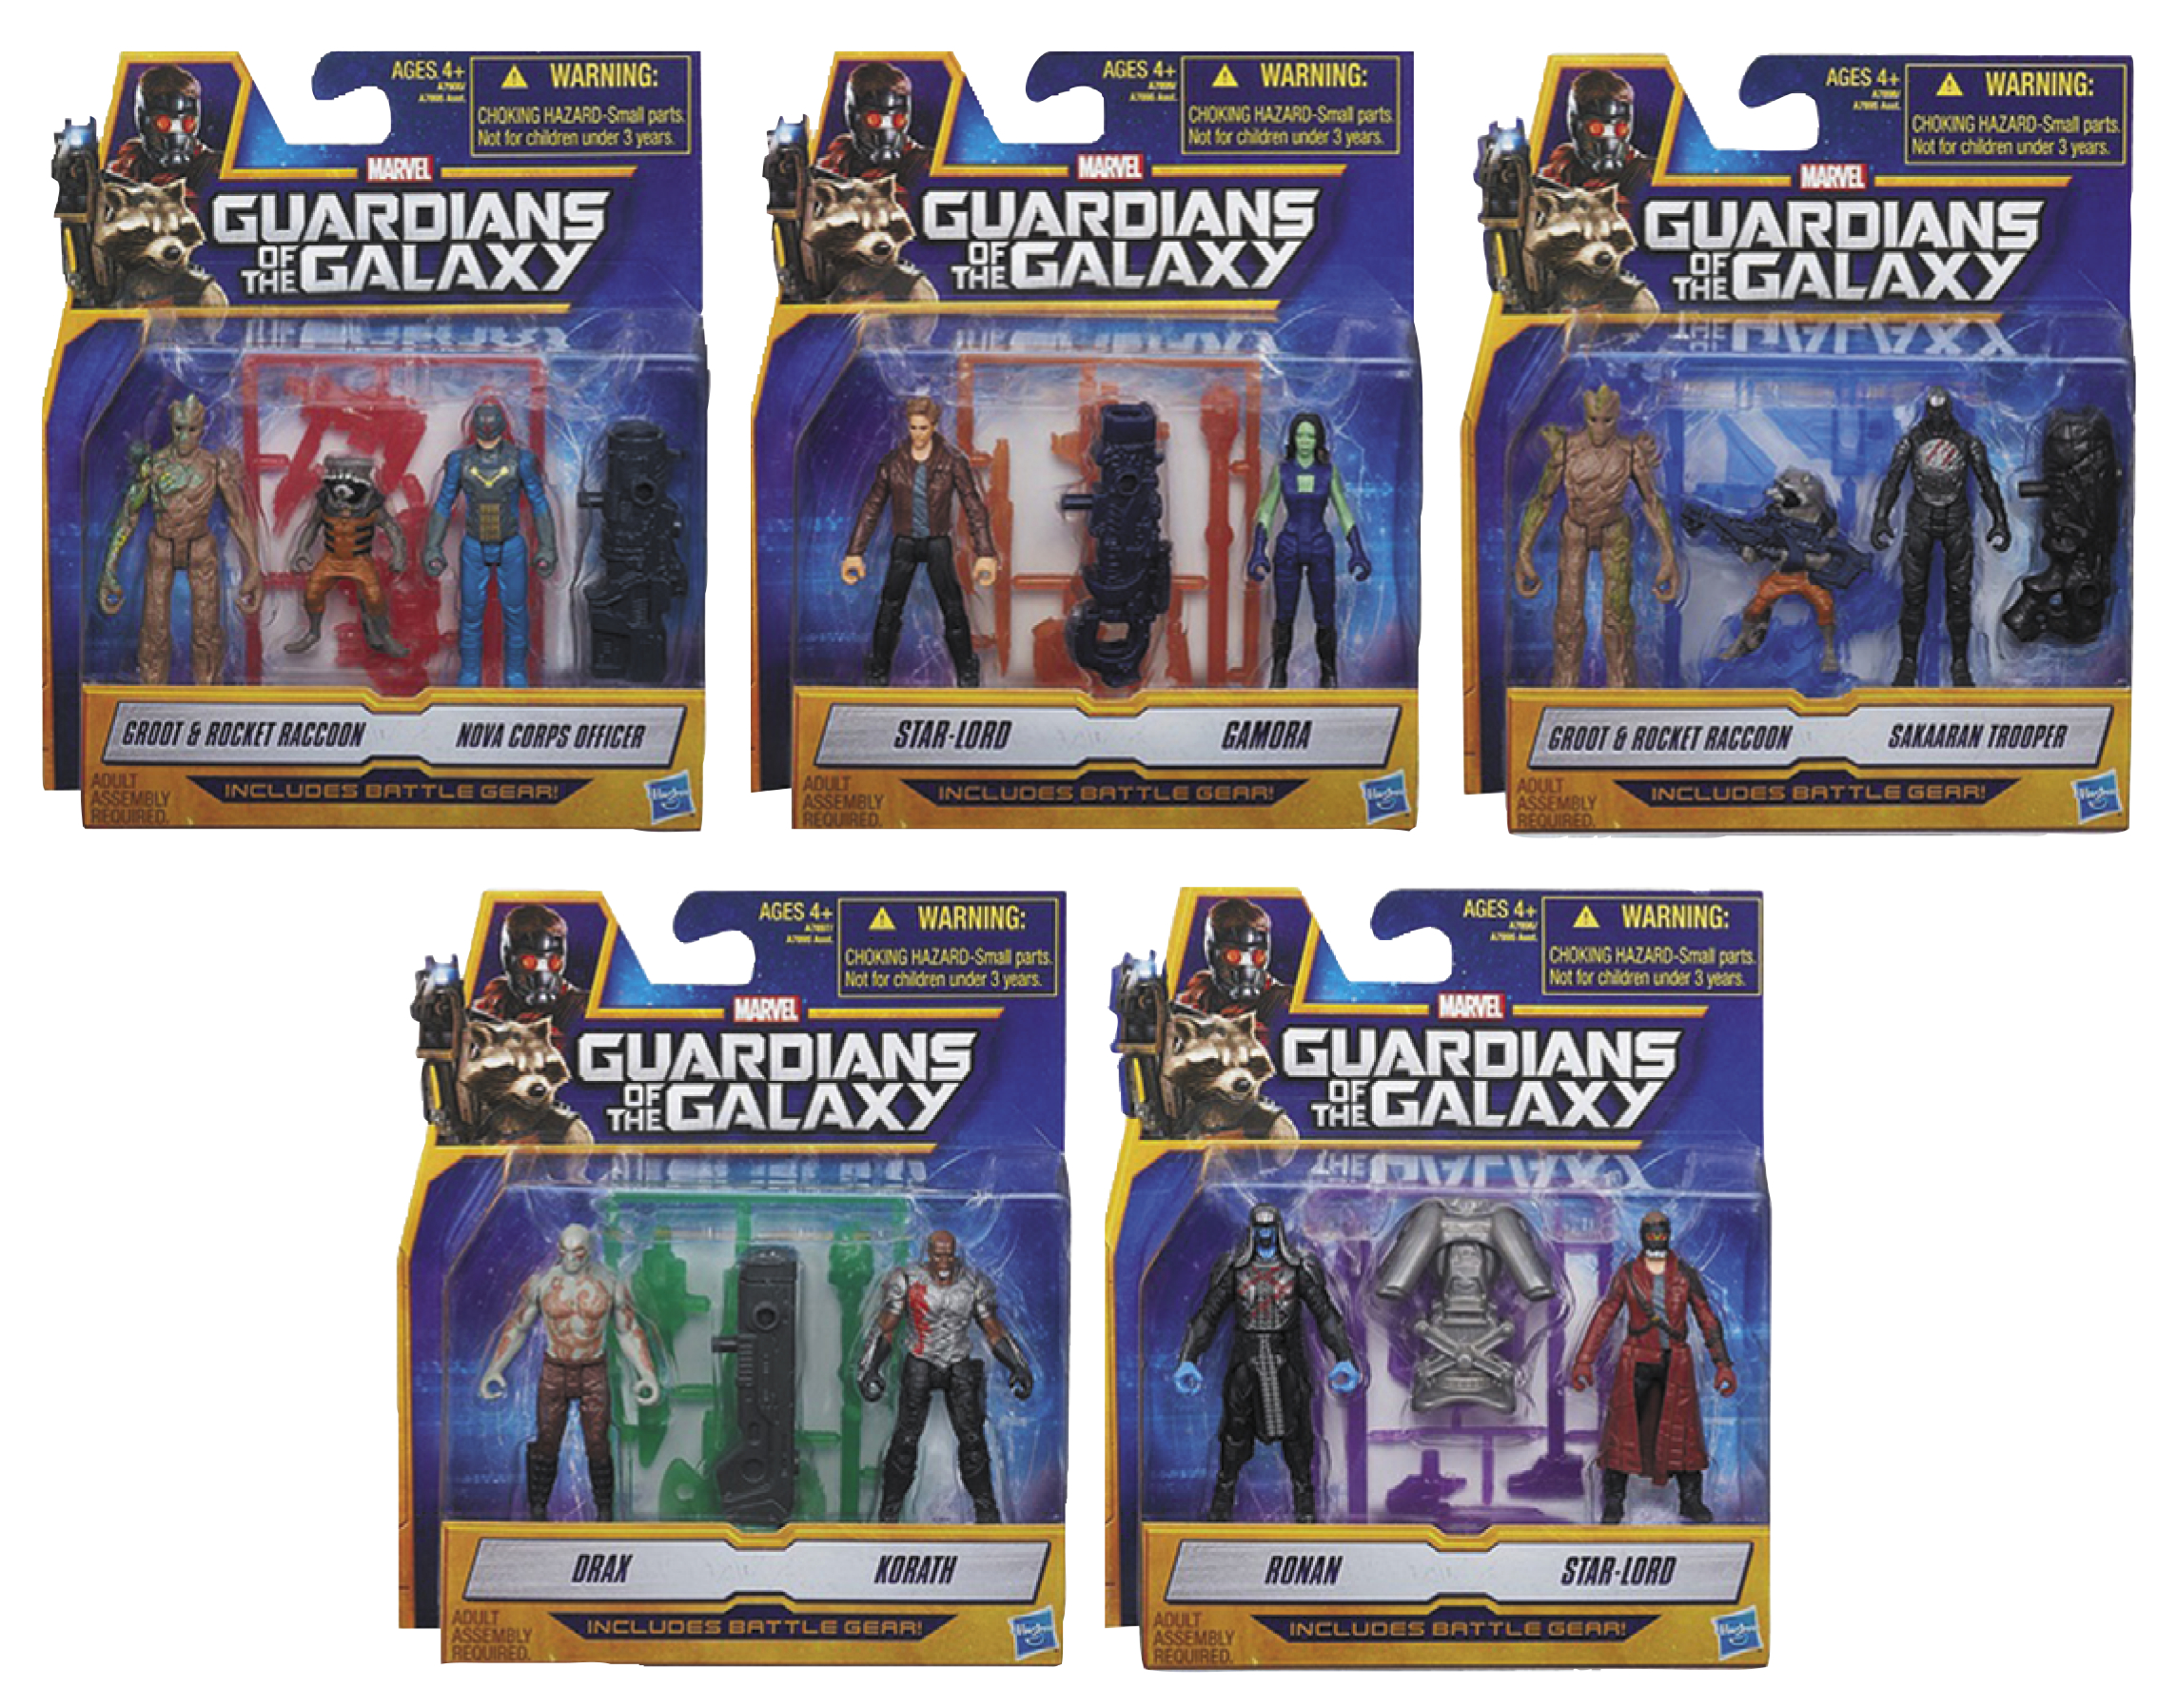 MAY142327 - GUARDIANS O/T GALAXY AF 2-PACK ASST 201401